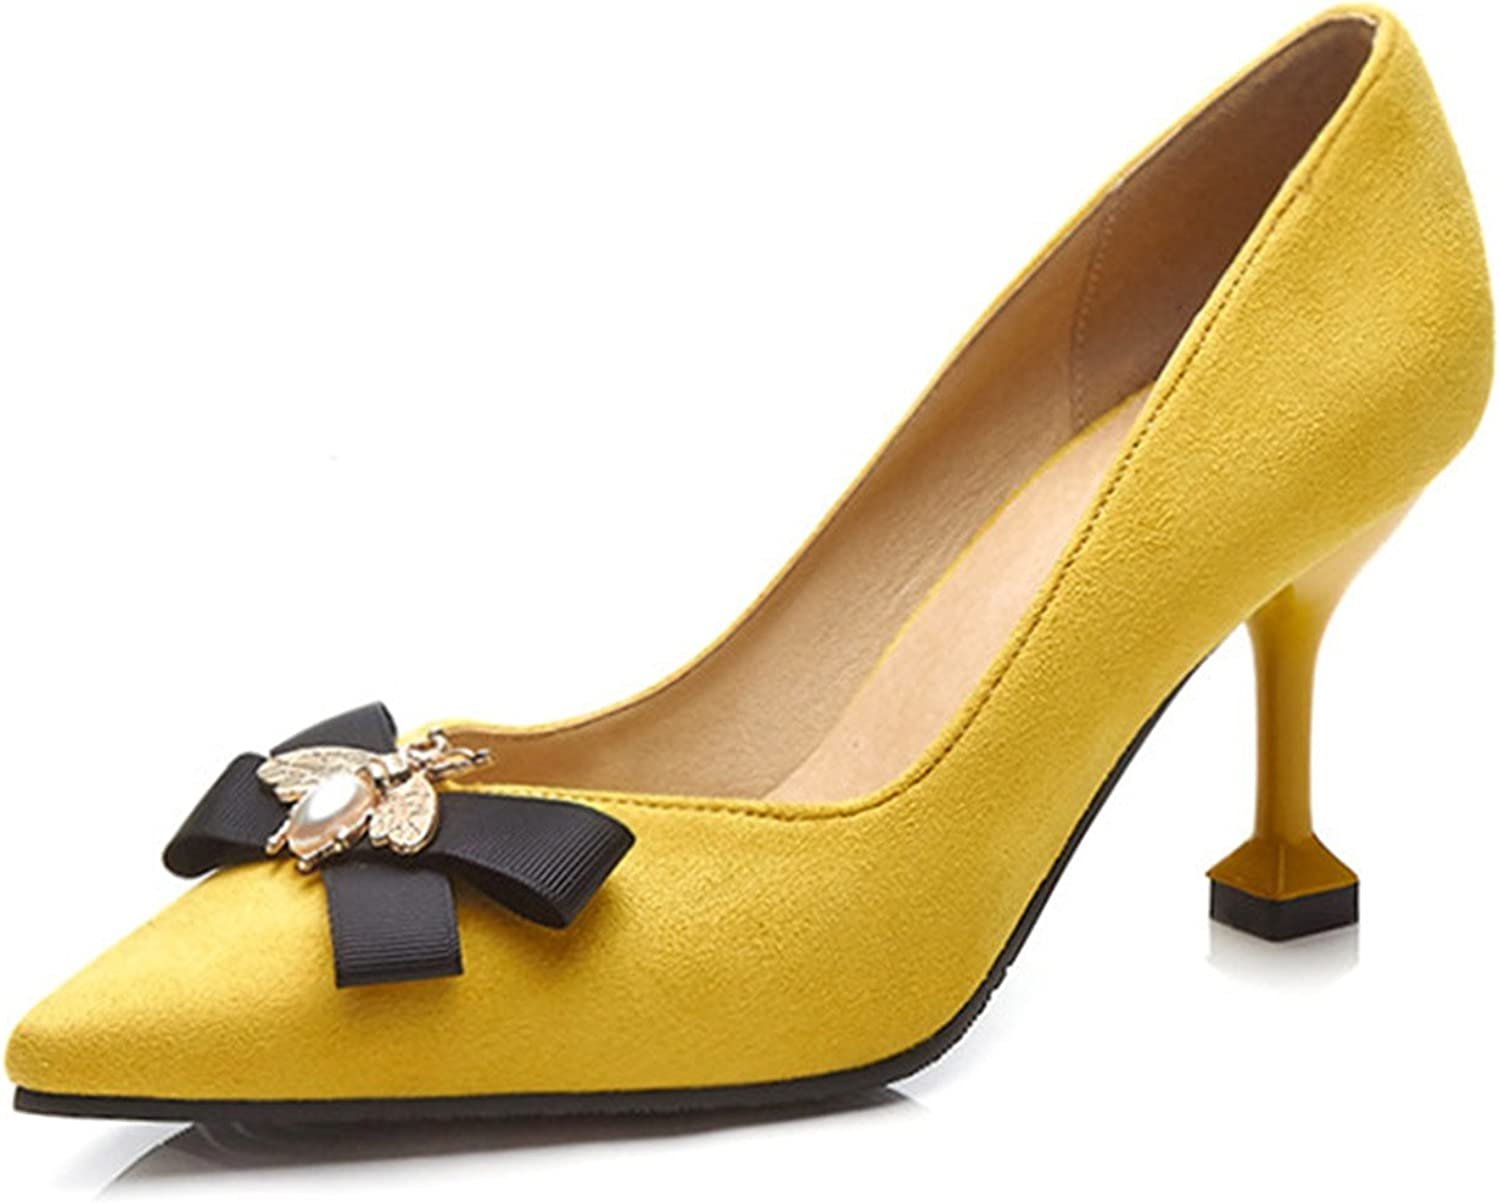 Pumps High Heels Office Lady Kitten Heels Pointed Toe Bow shoes Bee Black Heels Female shoes Spring Big Size 33-46